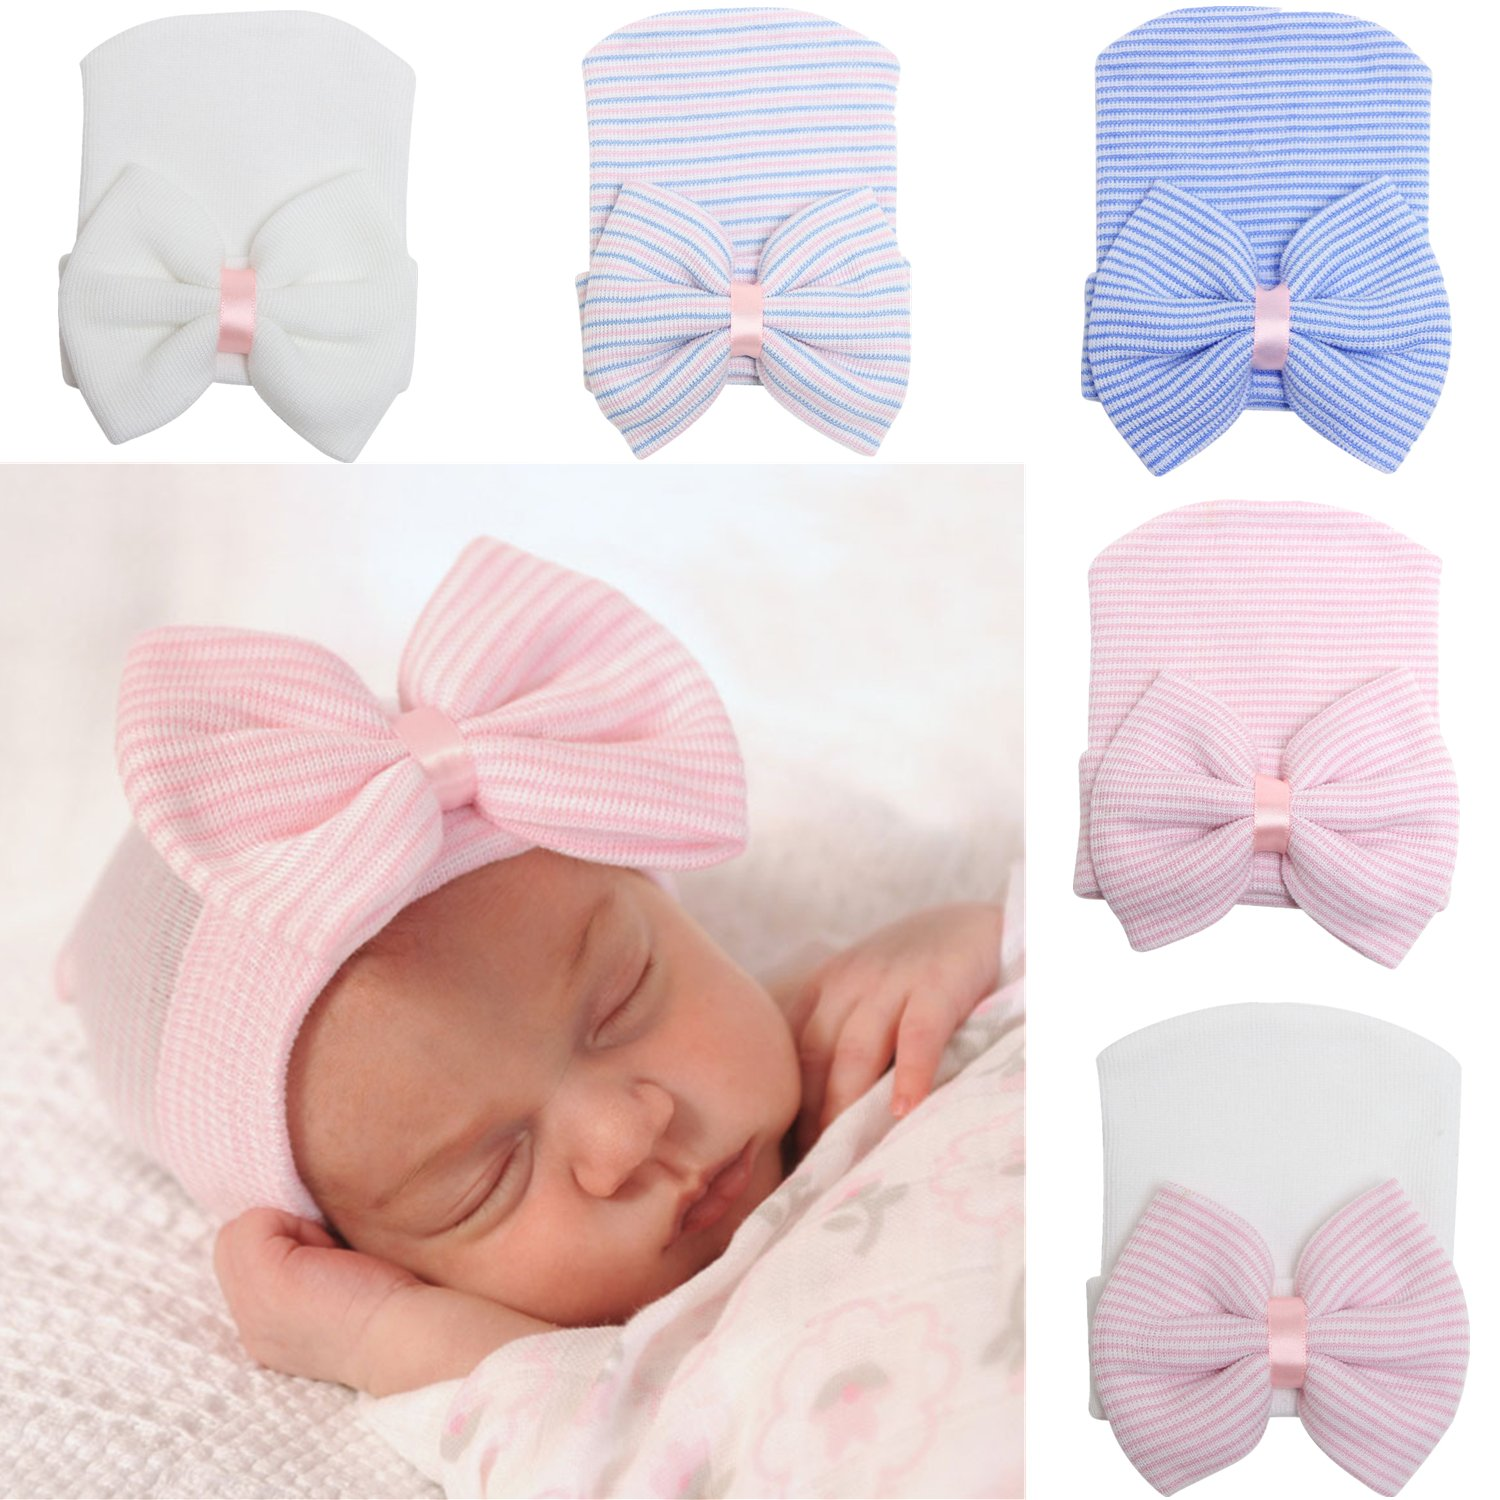 YQWEL Newborn Hospital Hat Infant Baby Hat Cap with Big Bow Soft Cute Knot Nursery Beanie